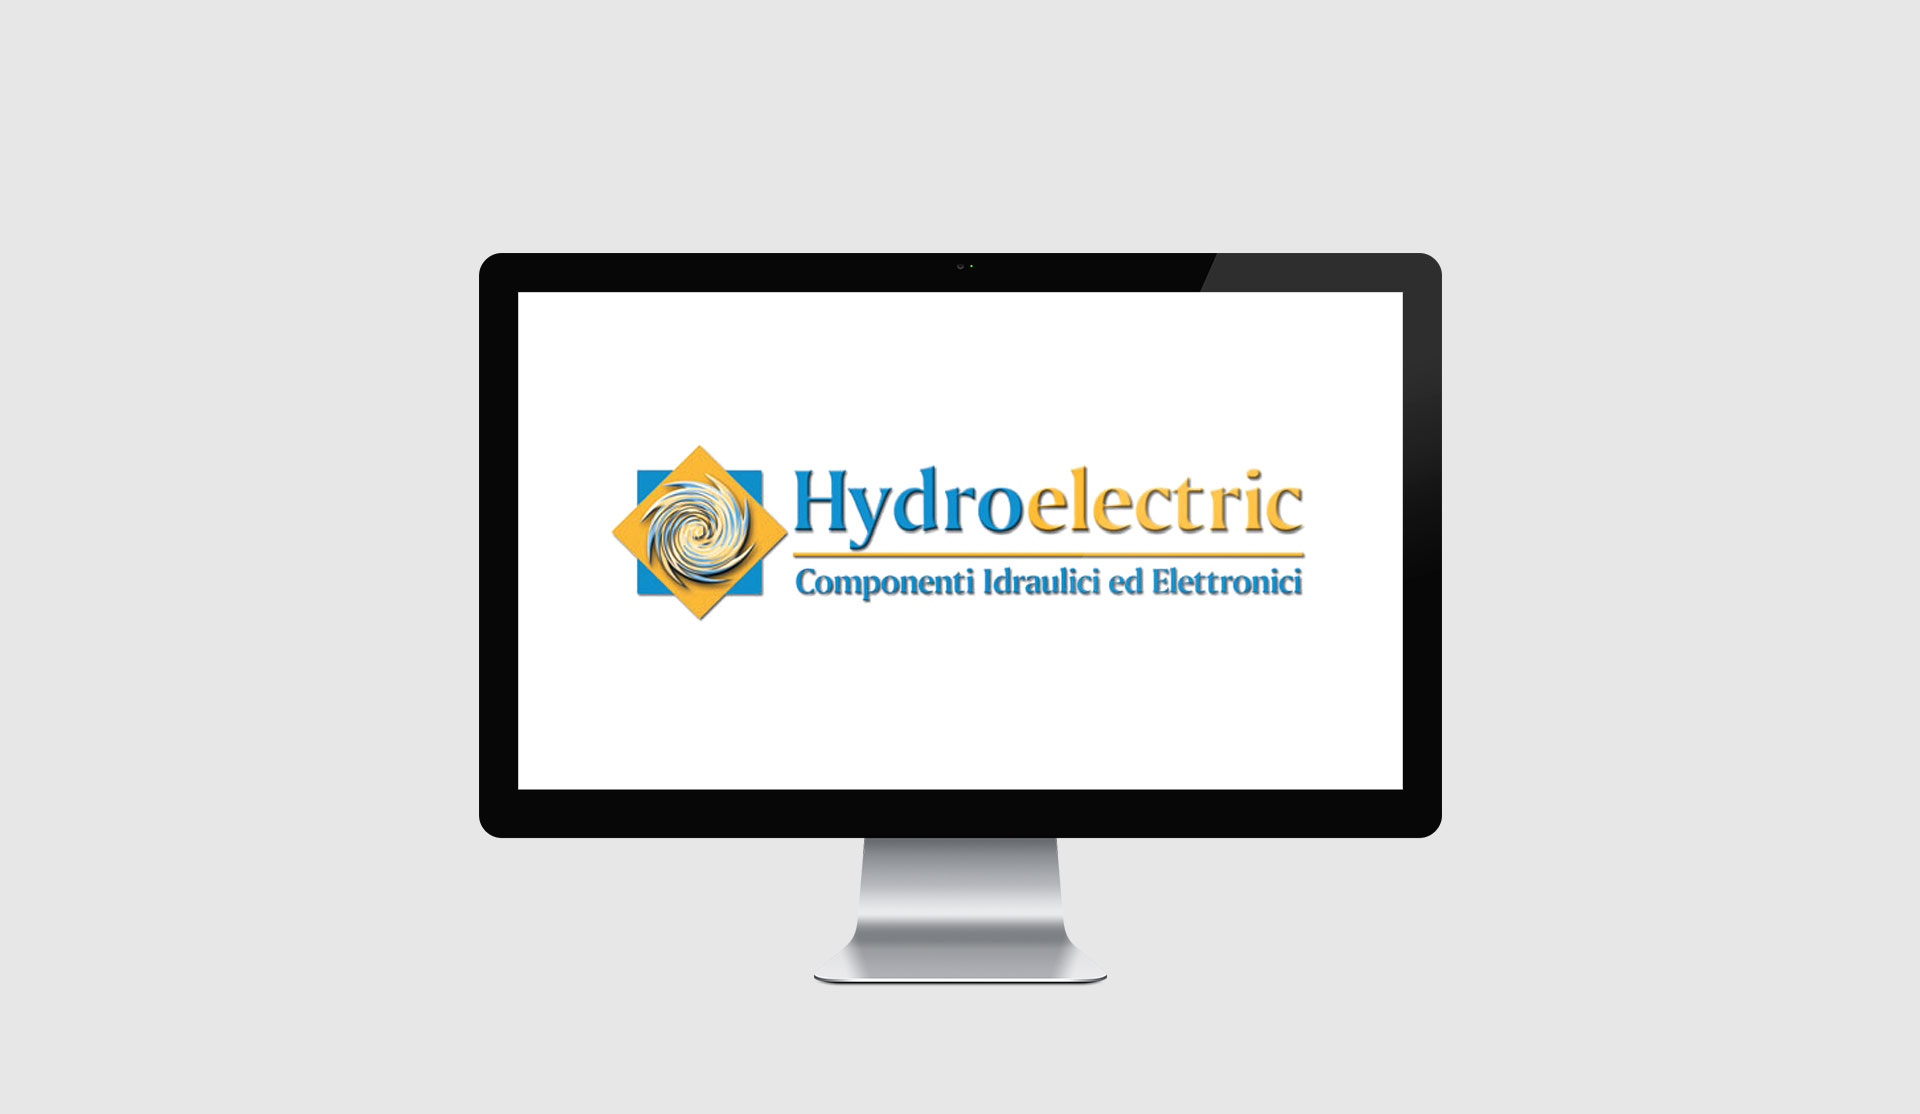 hydro electric old logo version redesign